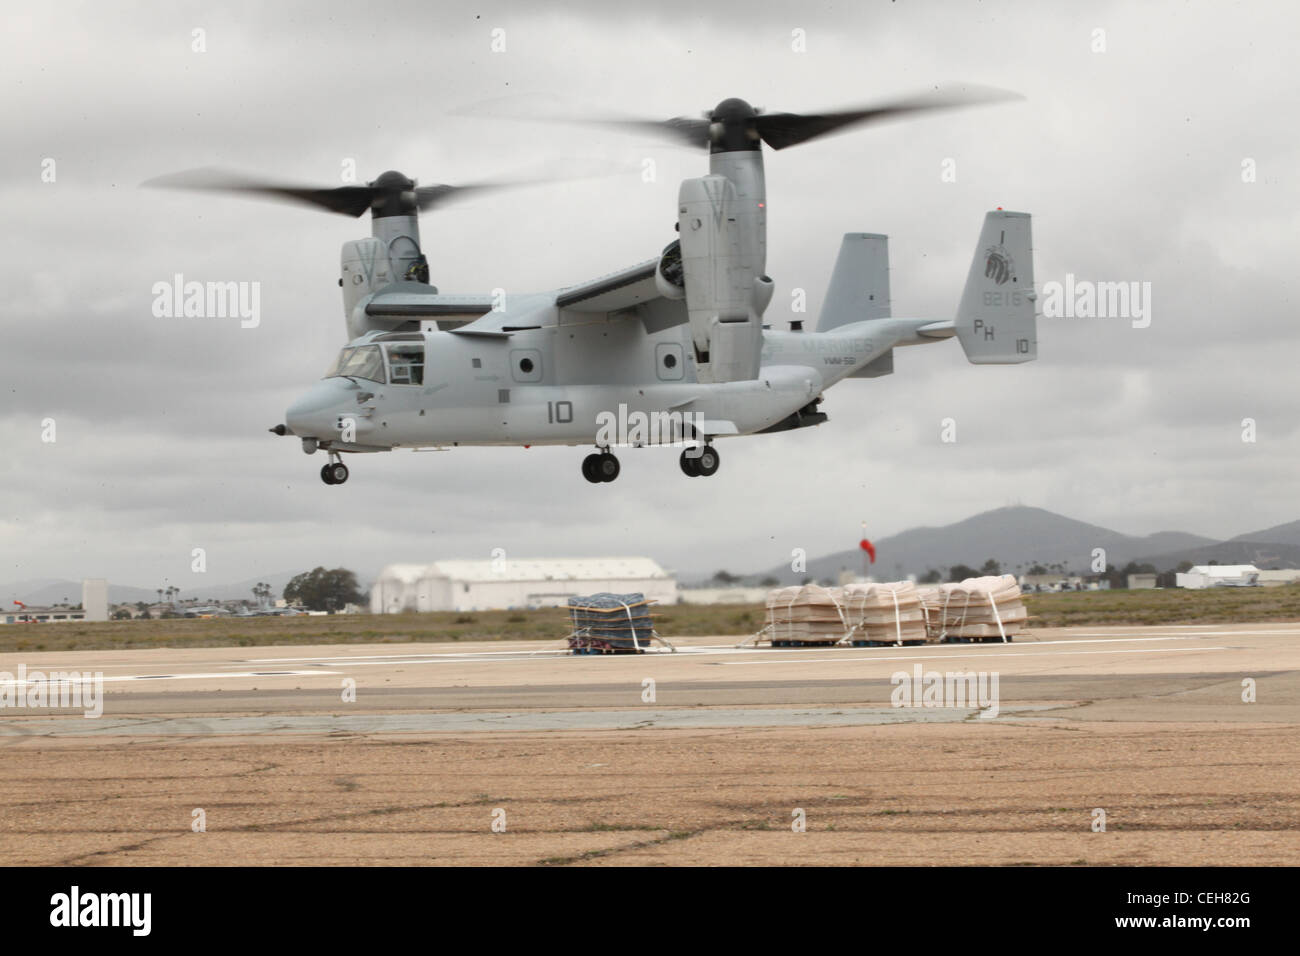 Landing Configuration Stock Photos Osprey Engine Diagram An Mv 22b Hovers Over Mattress Stacks During Emergency Pad Procedures Aboard